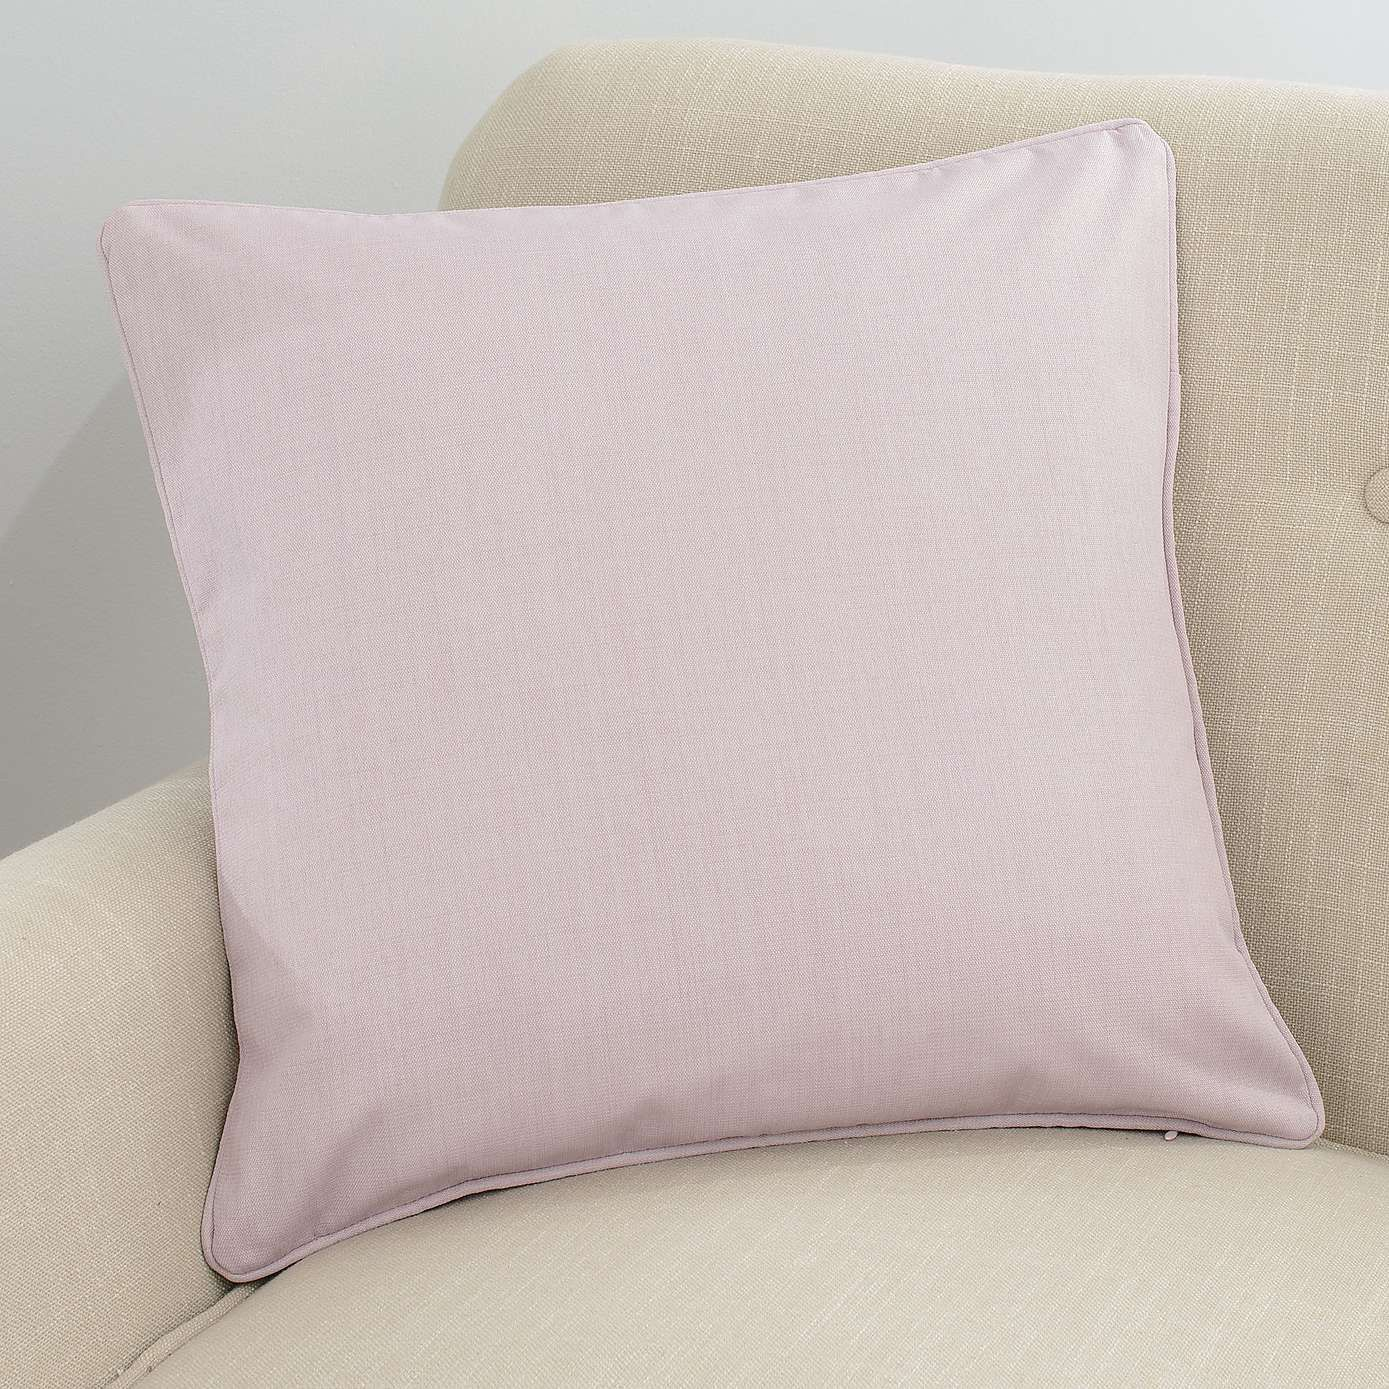 Solar Pink Cushion Cover Dunelm My room ideas